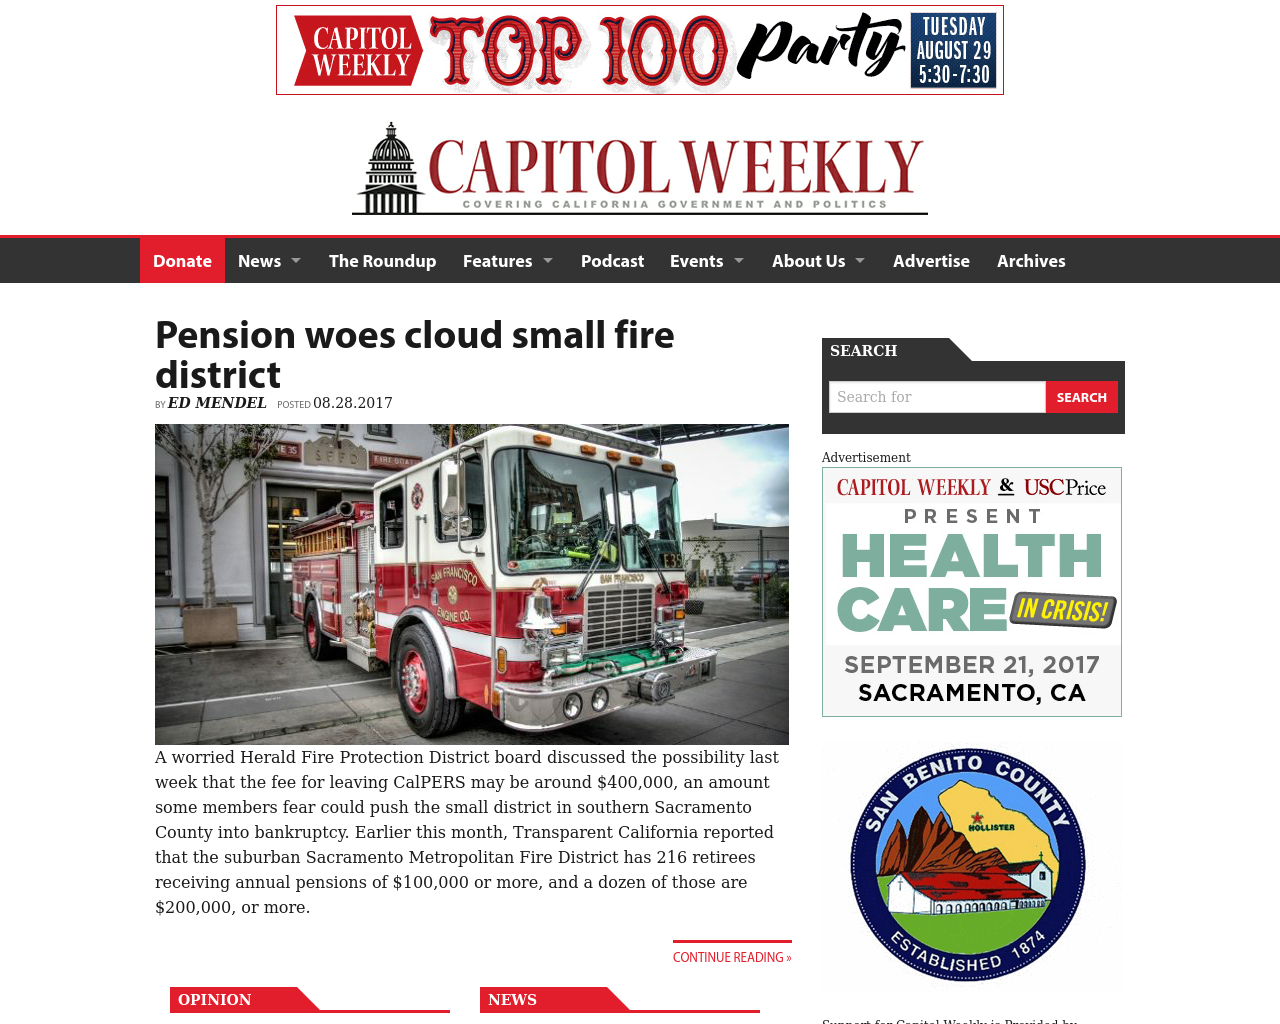 Capitol-Weekly-Advertising-Reviews-Pricing